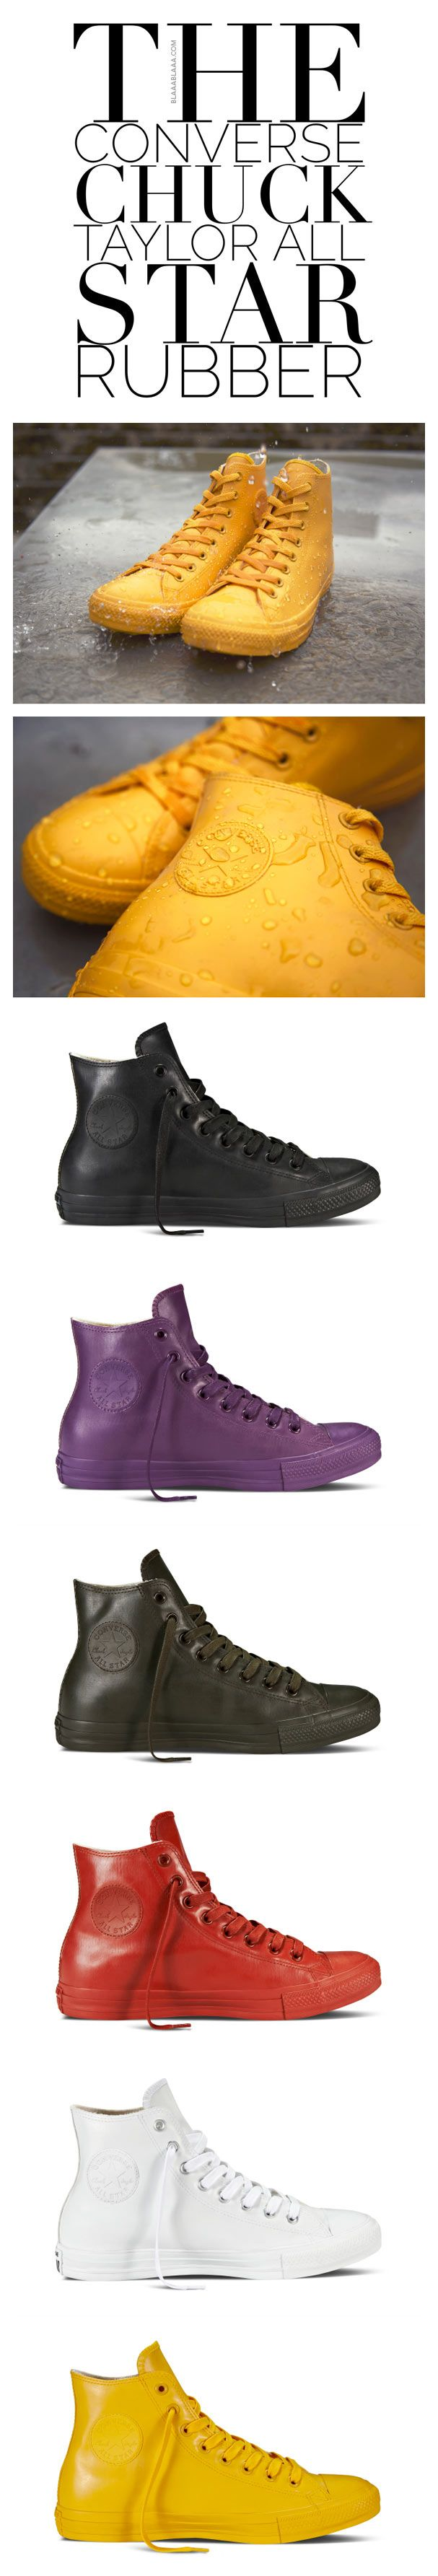 Converse Chuck Taylor All Star Rubber | The House of Beccaria~